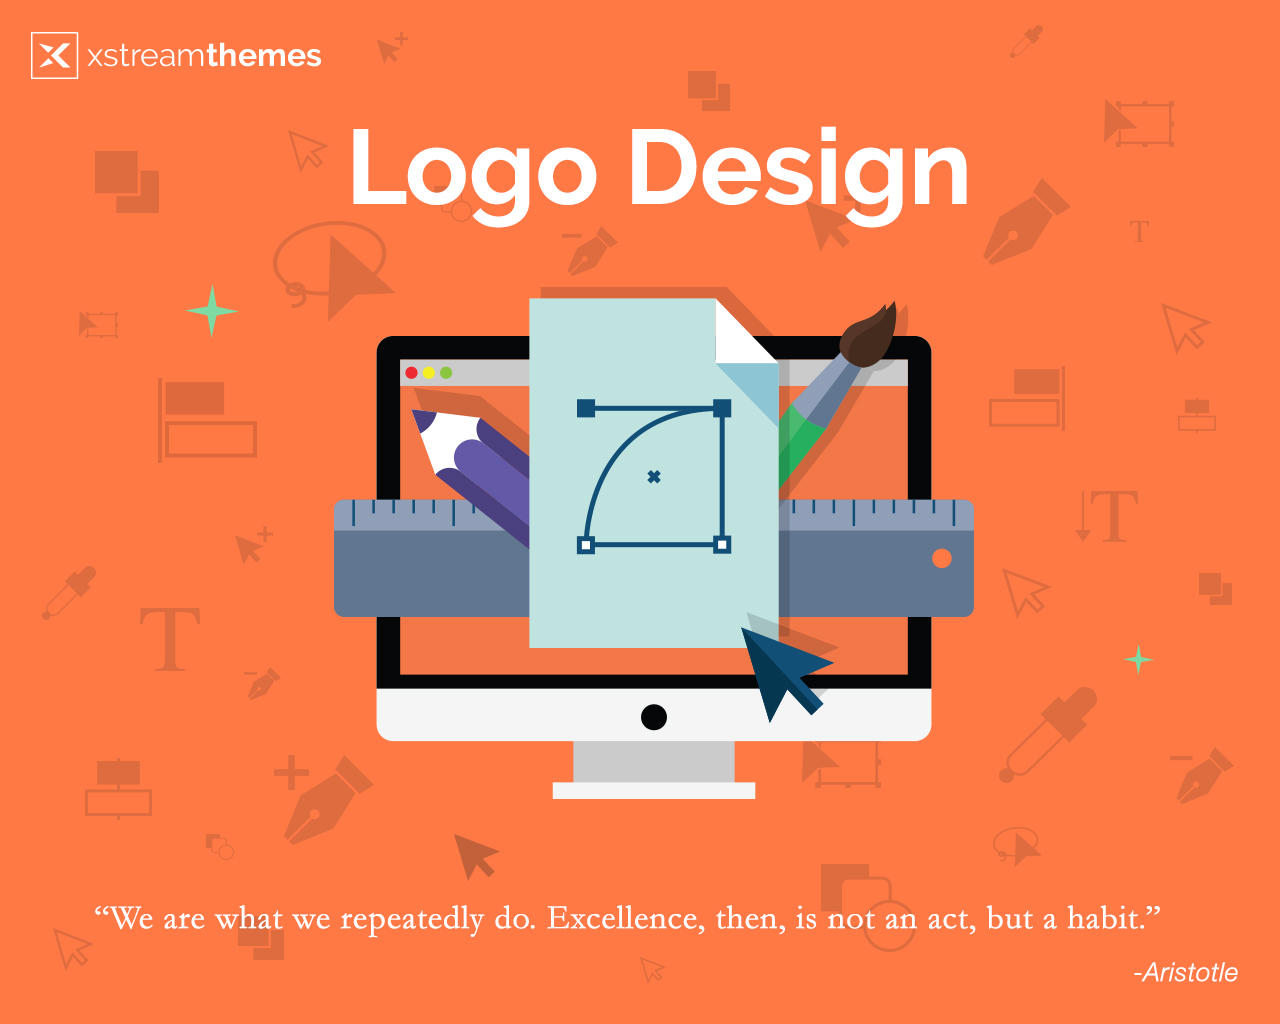 Professional Logo Design Service by xstreamthemes - 102041